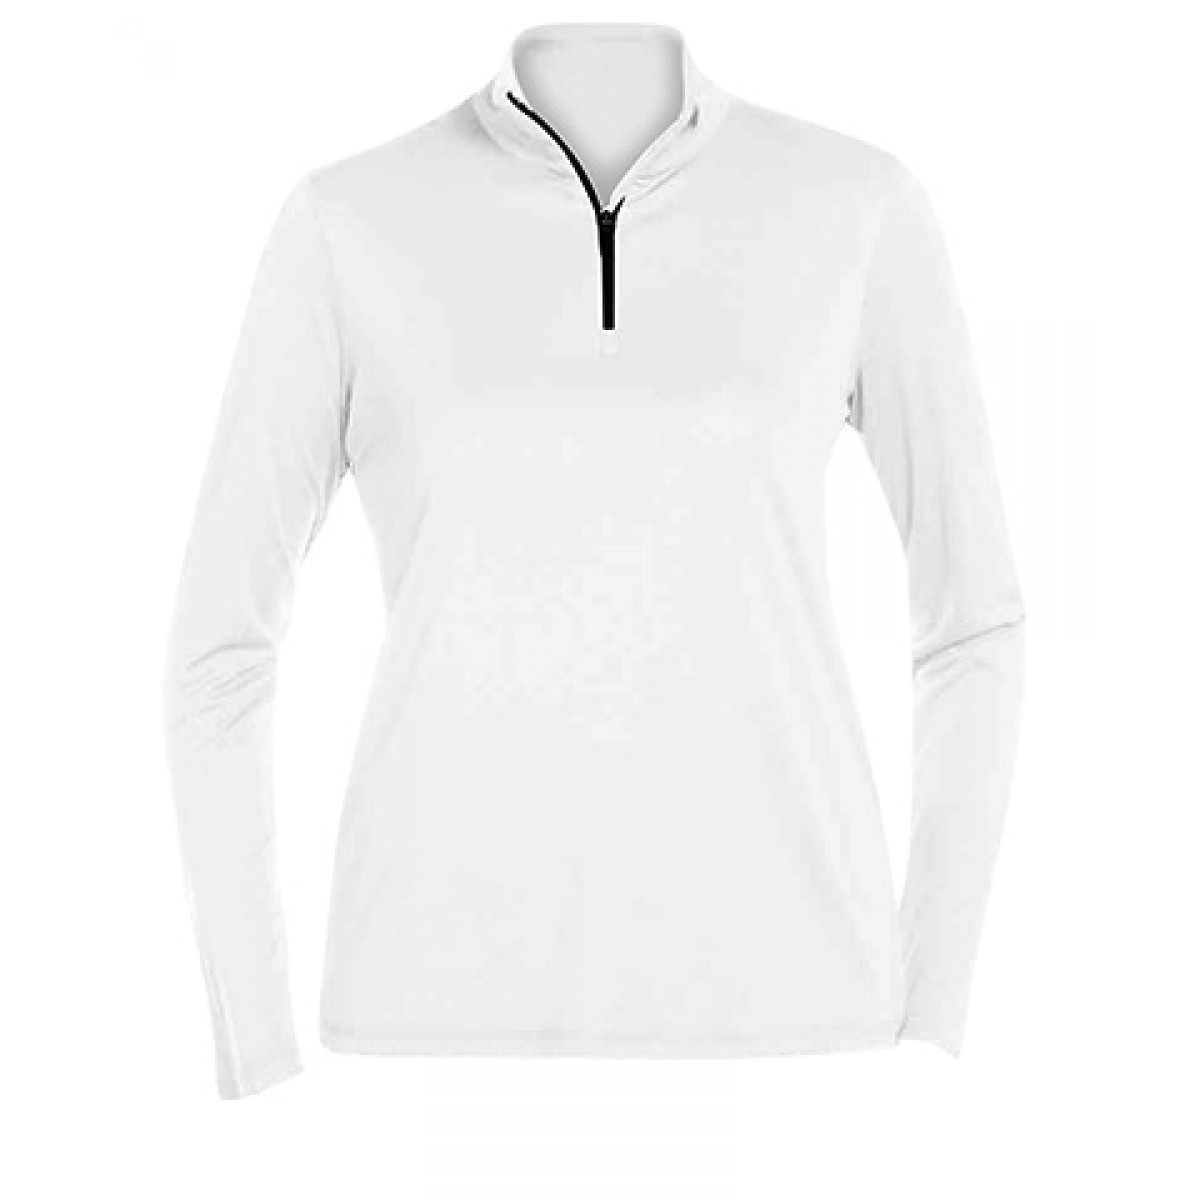 Ladies' Quarter-Zip Lightweight Pullover-White-M